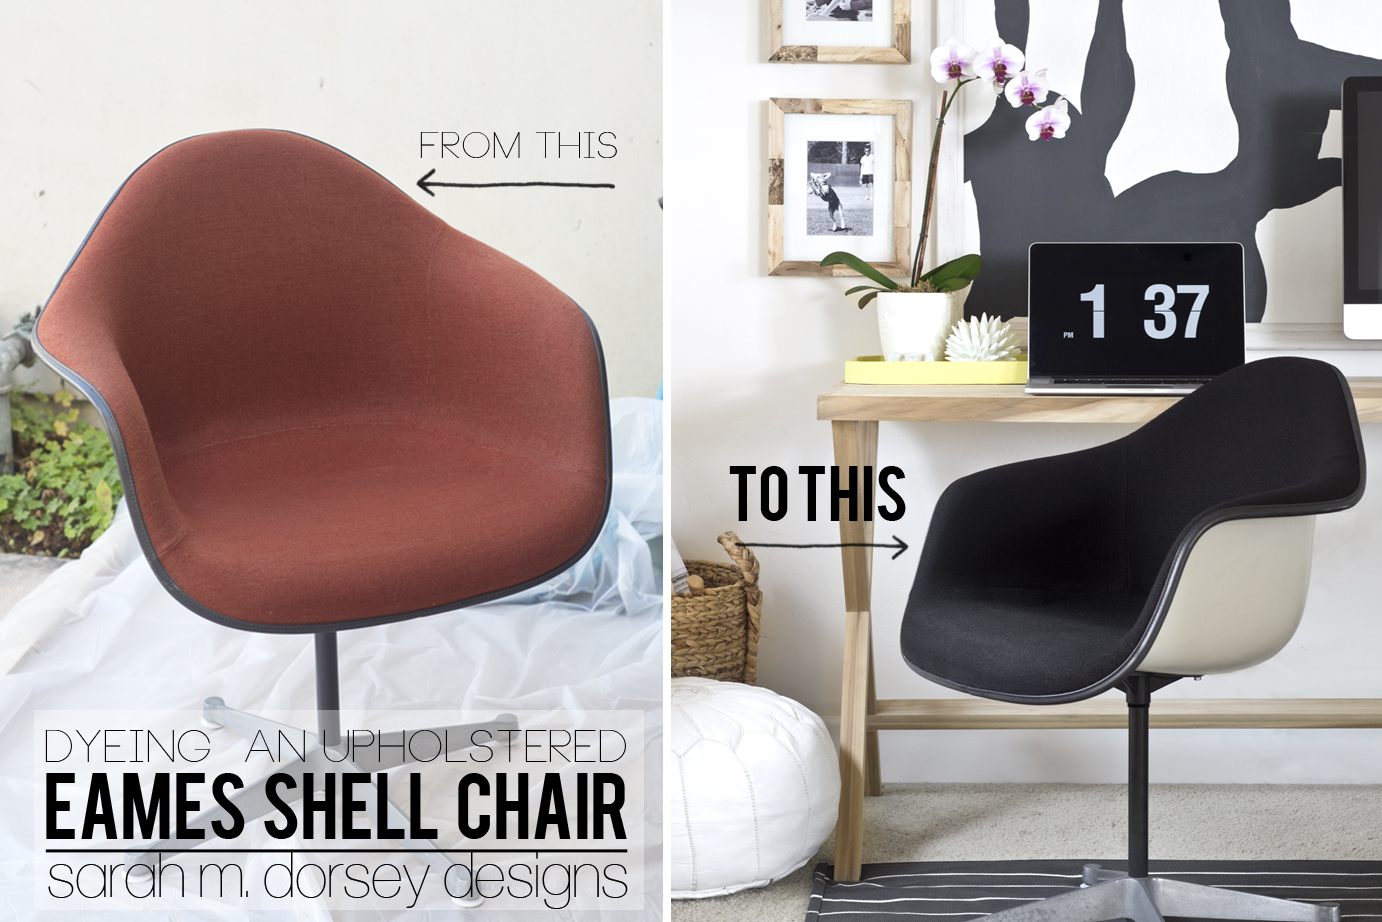 Dyeing An Upholstered Eames Shell Chair